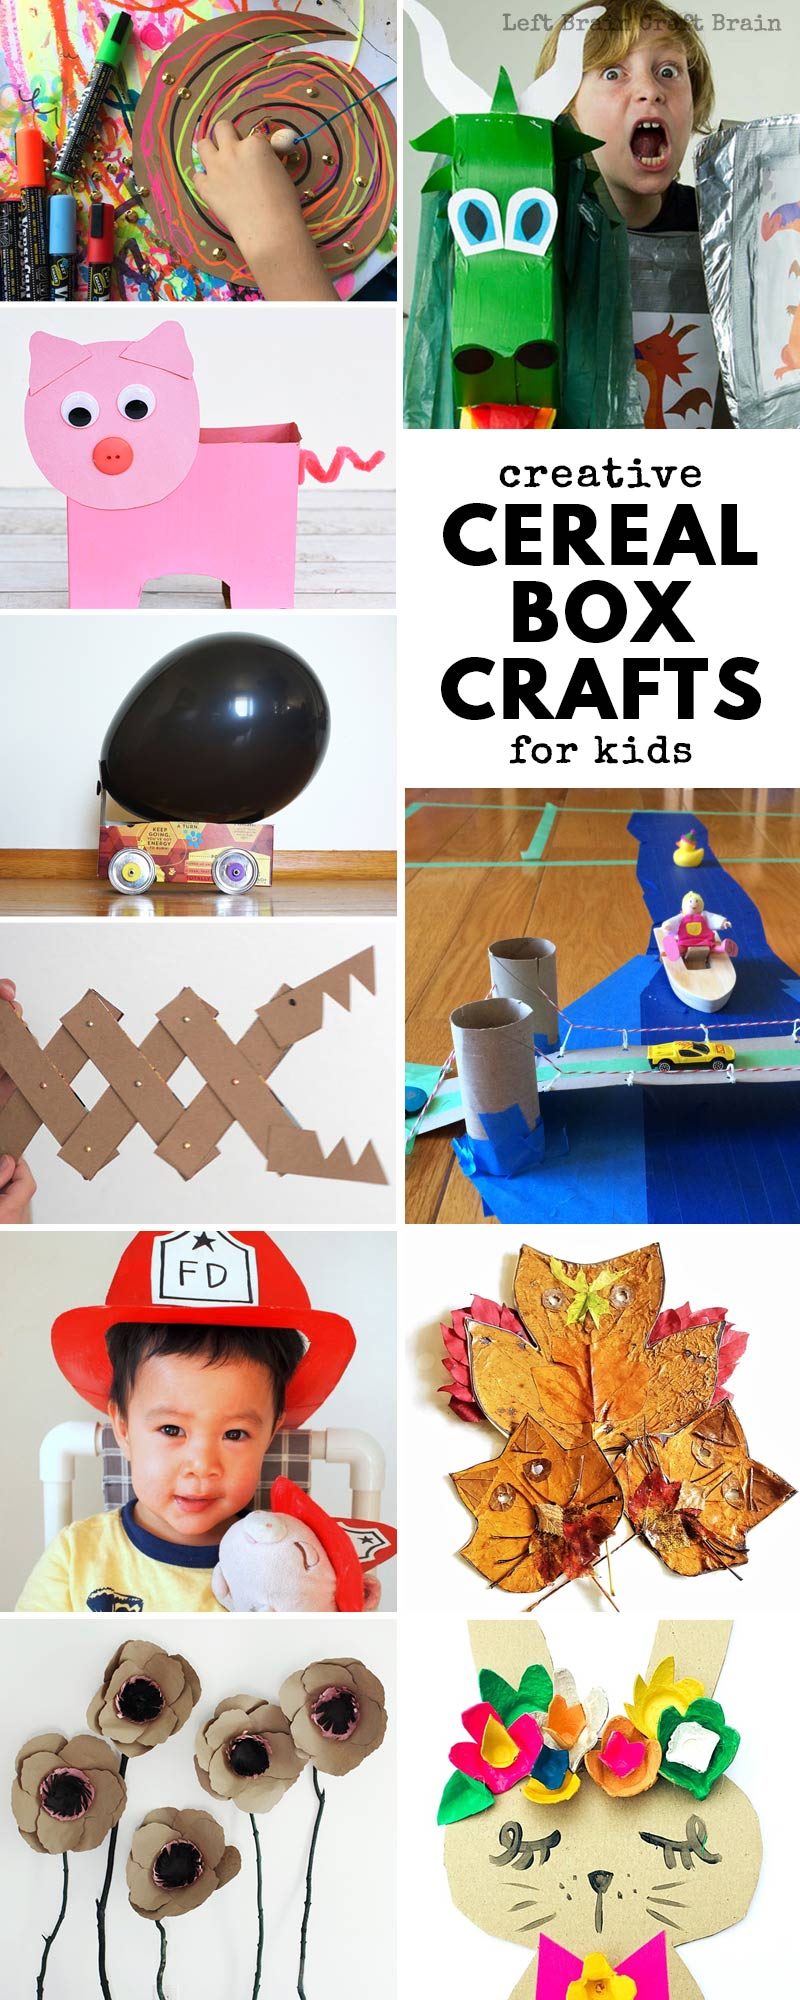 Gather up all those empty cereal boxes! Here's a mega list of 30+ Super Creative Cereal Box Crafts for Kids. Inside this creative list, you'll find cereal box cars, flowers, pretend play props, art projects and tools, cereal box animals, and more. Even a few life hacks, too. Cereal box projects are fun and inexpensive!